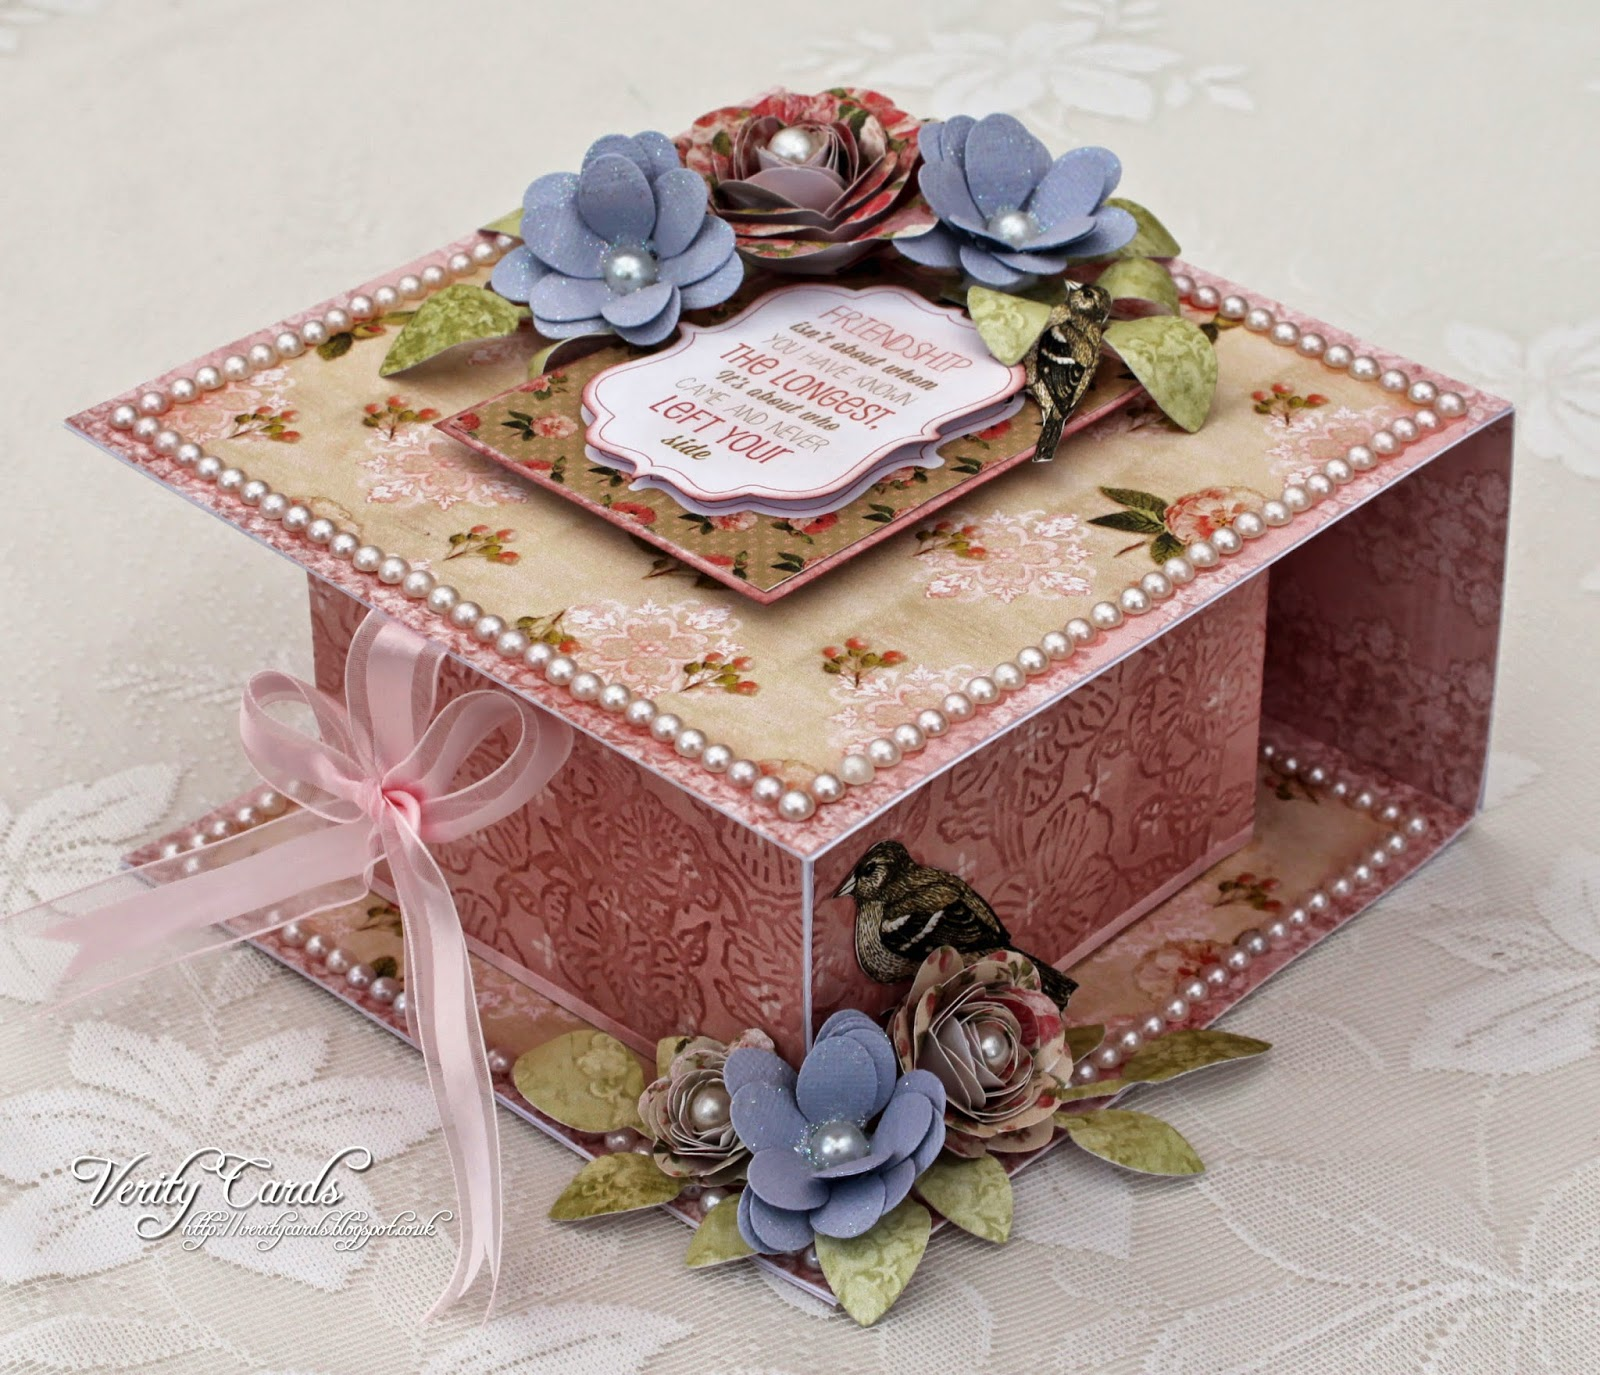 http://veritycards.blogspot.co.uk/2014/05/fold-over-box-tutorial.html